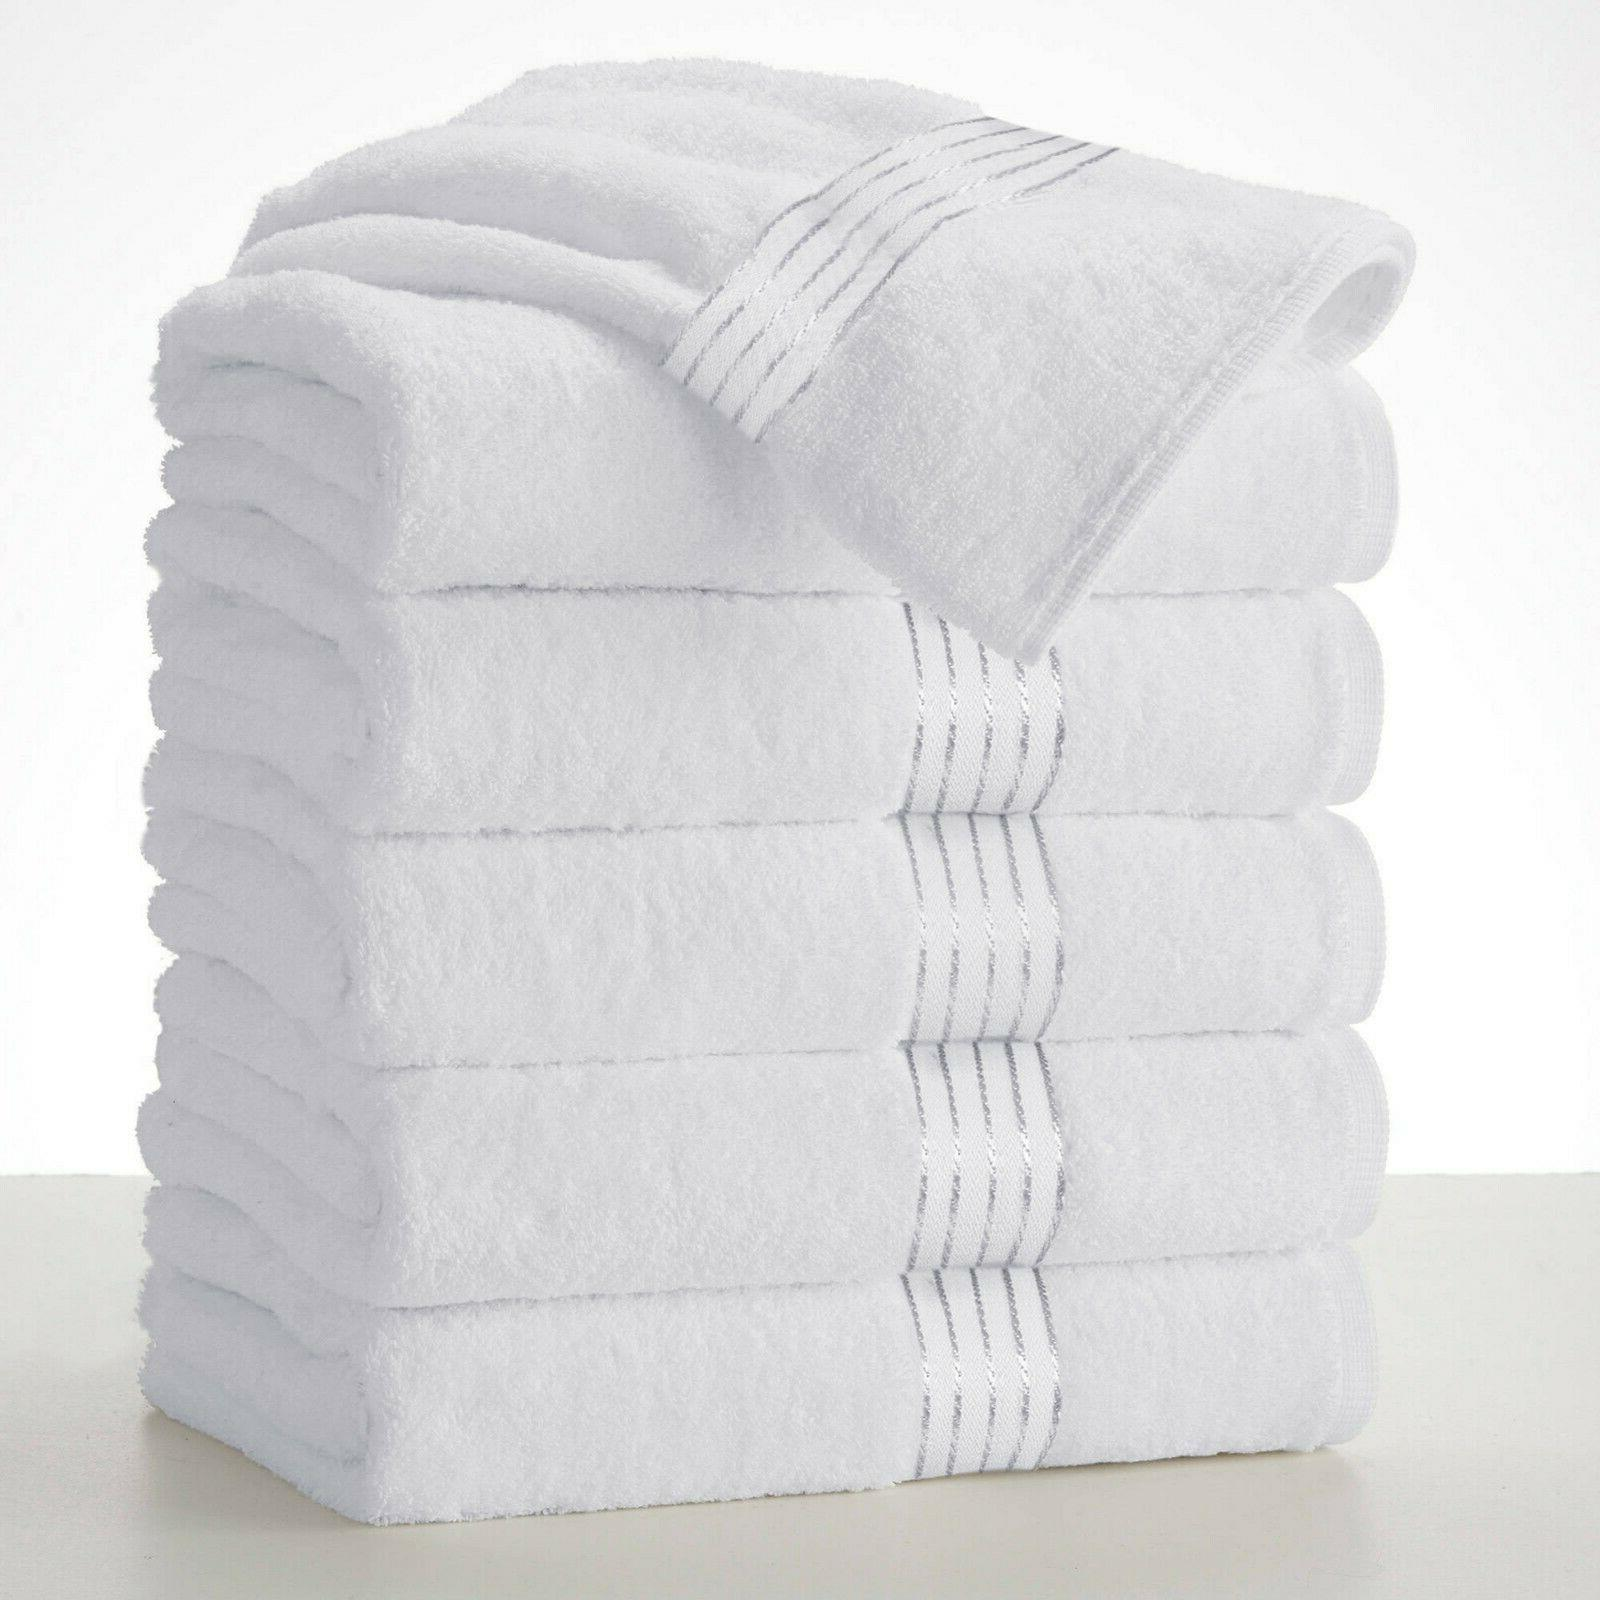 """Large Packs Sets Sheets 100% Cotton 27""""x55"""" Absorbent"""